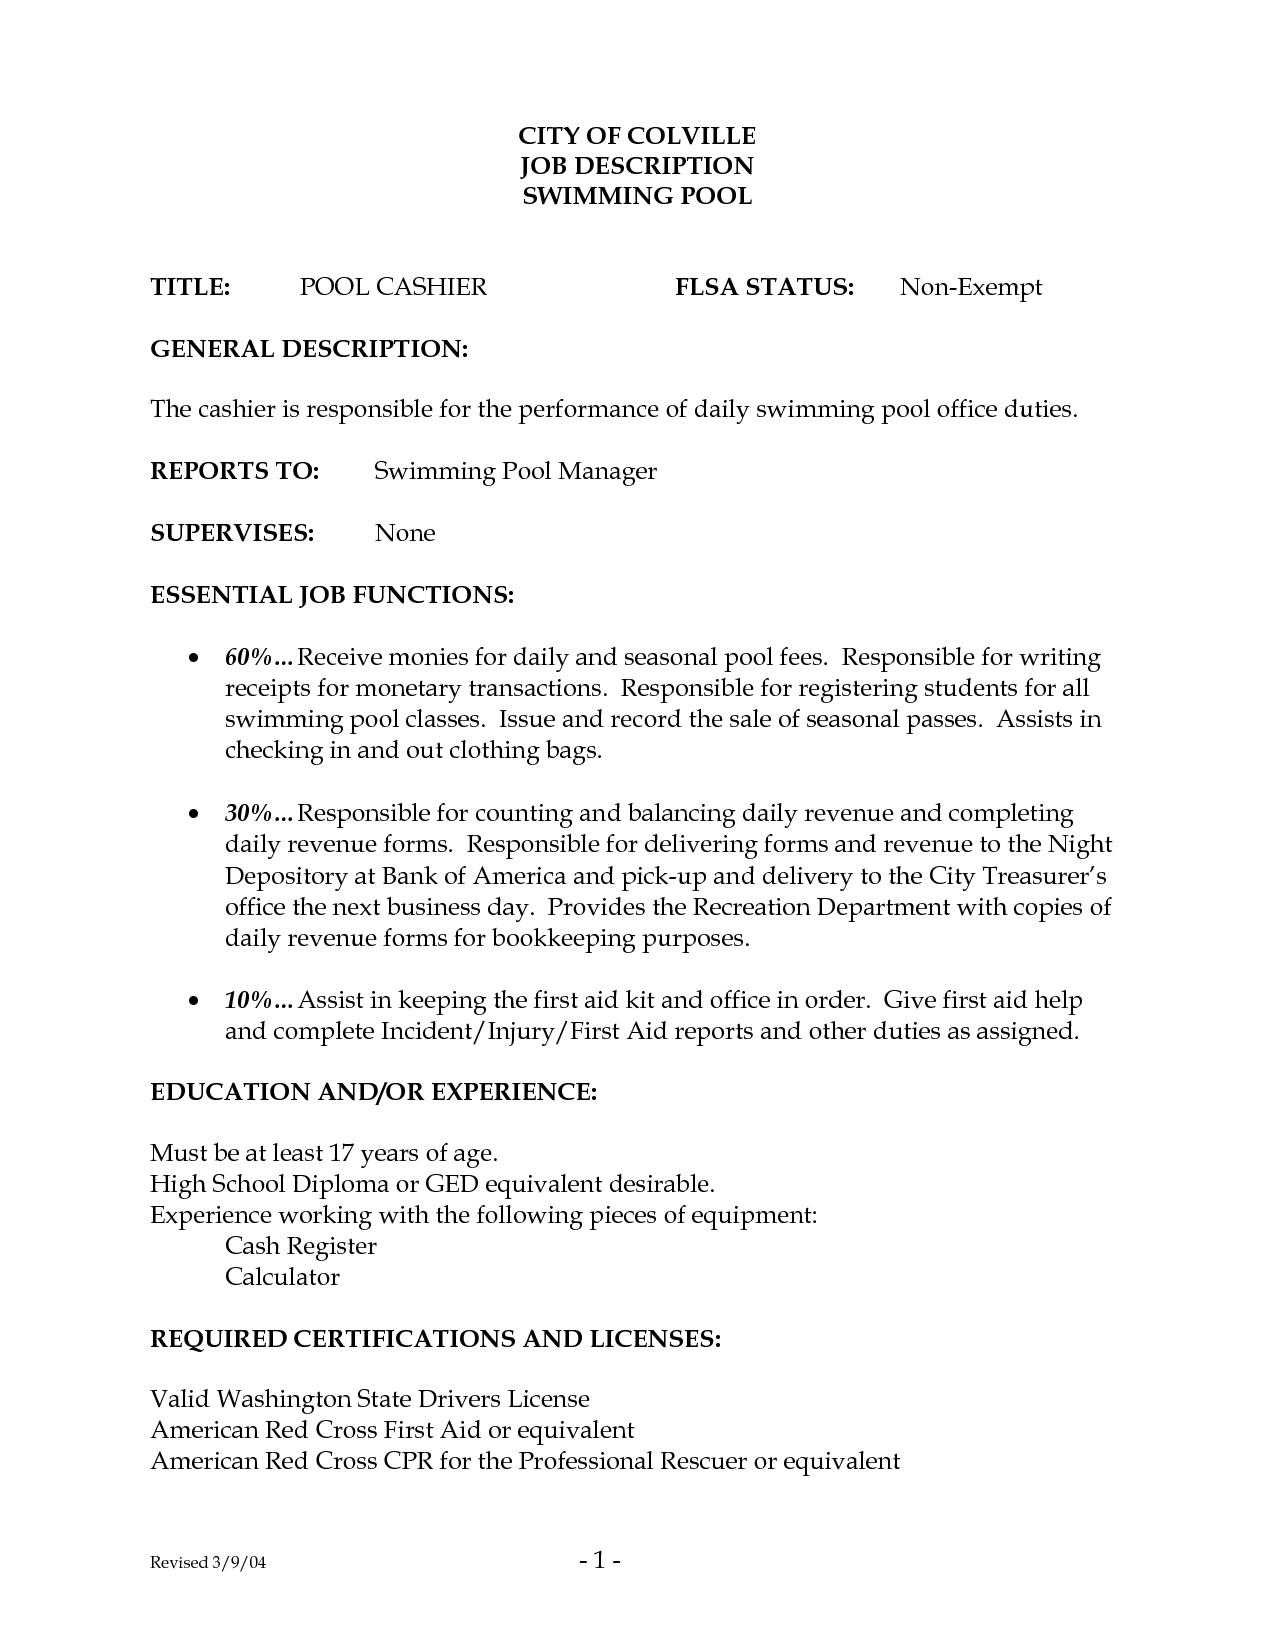 83 Excellent Mcdonalds Crew Member Job Description For Resume with Design